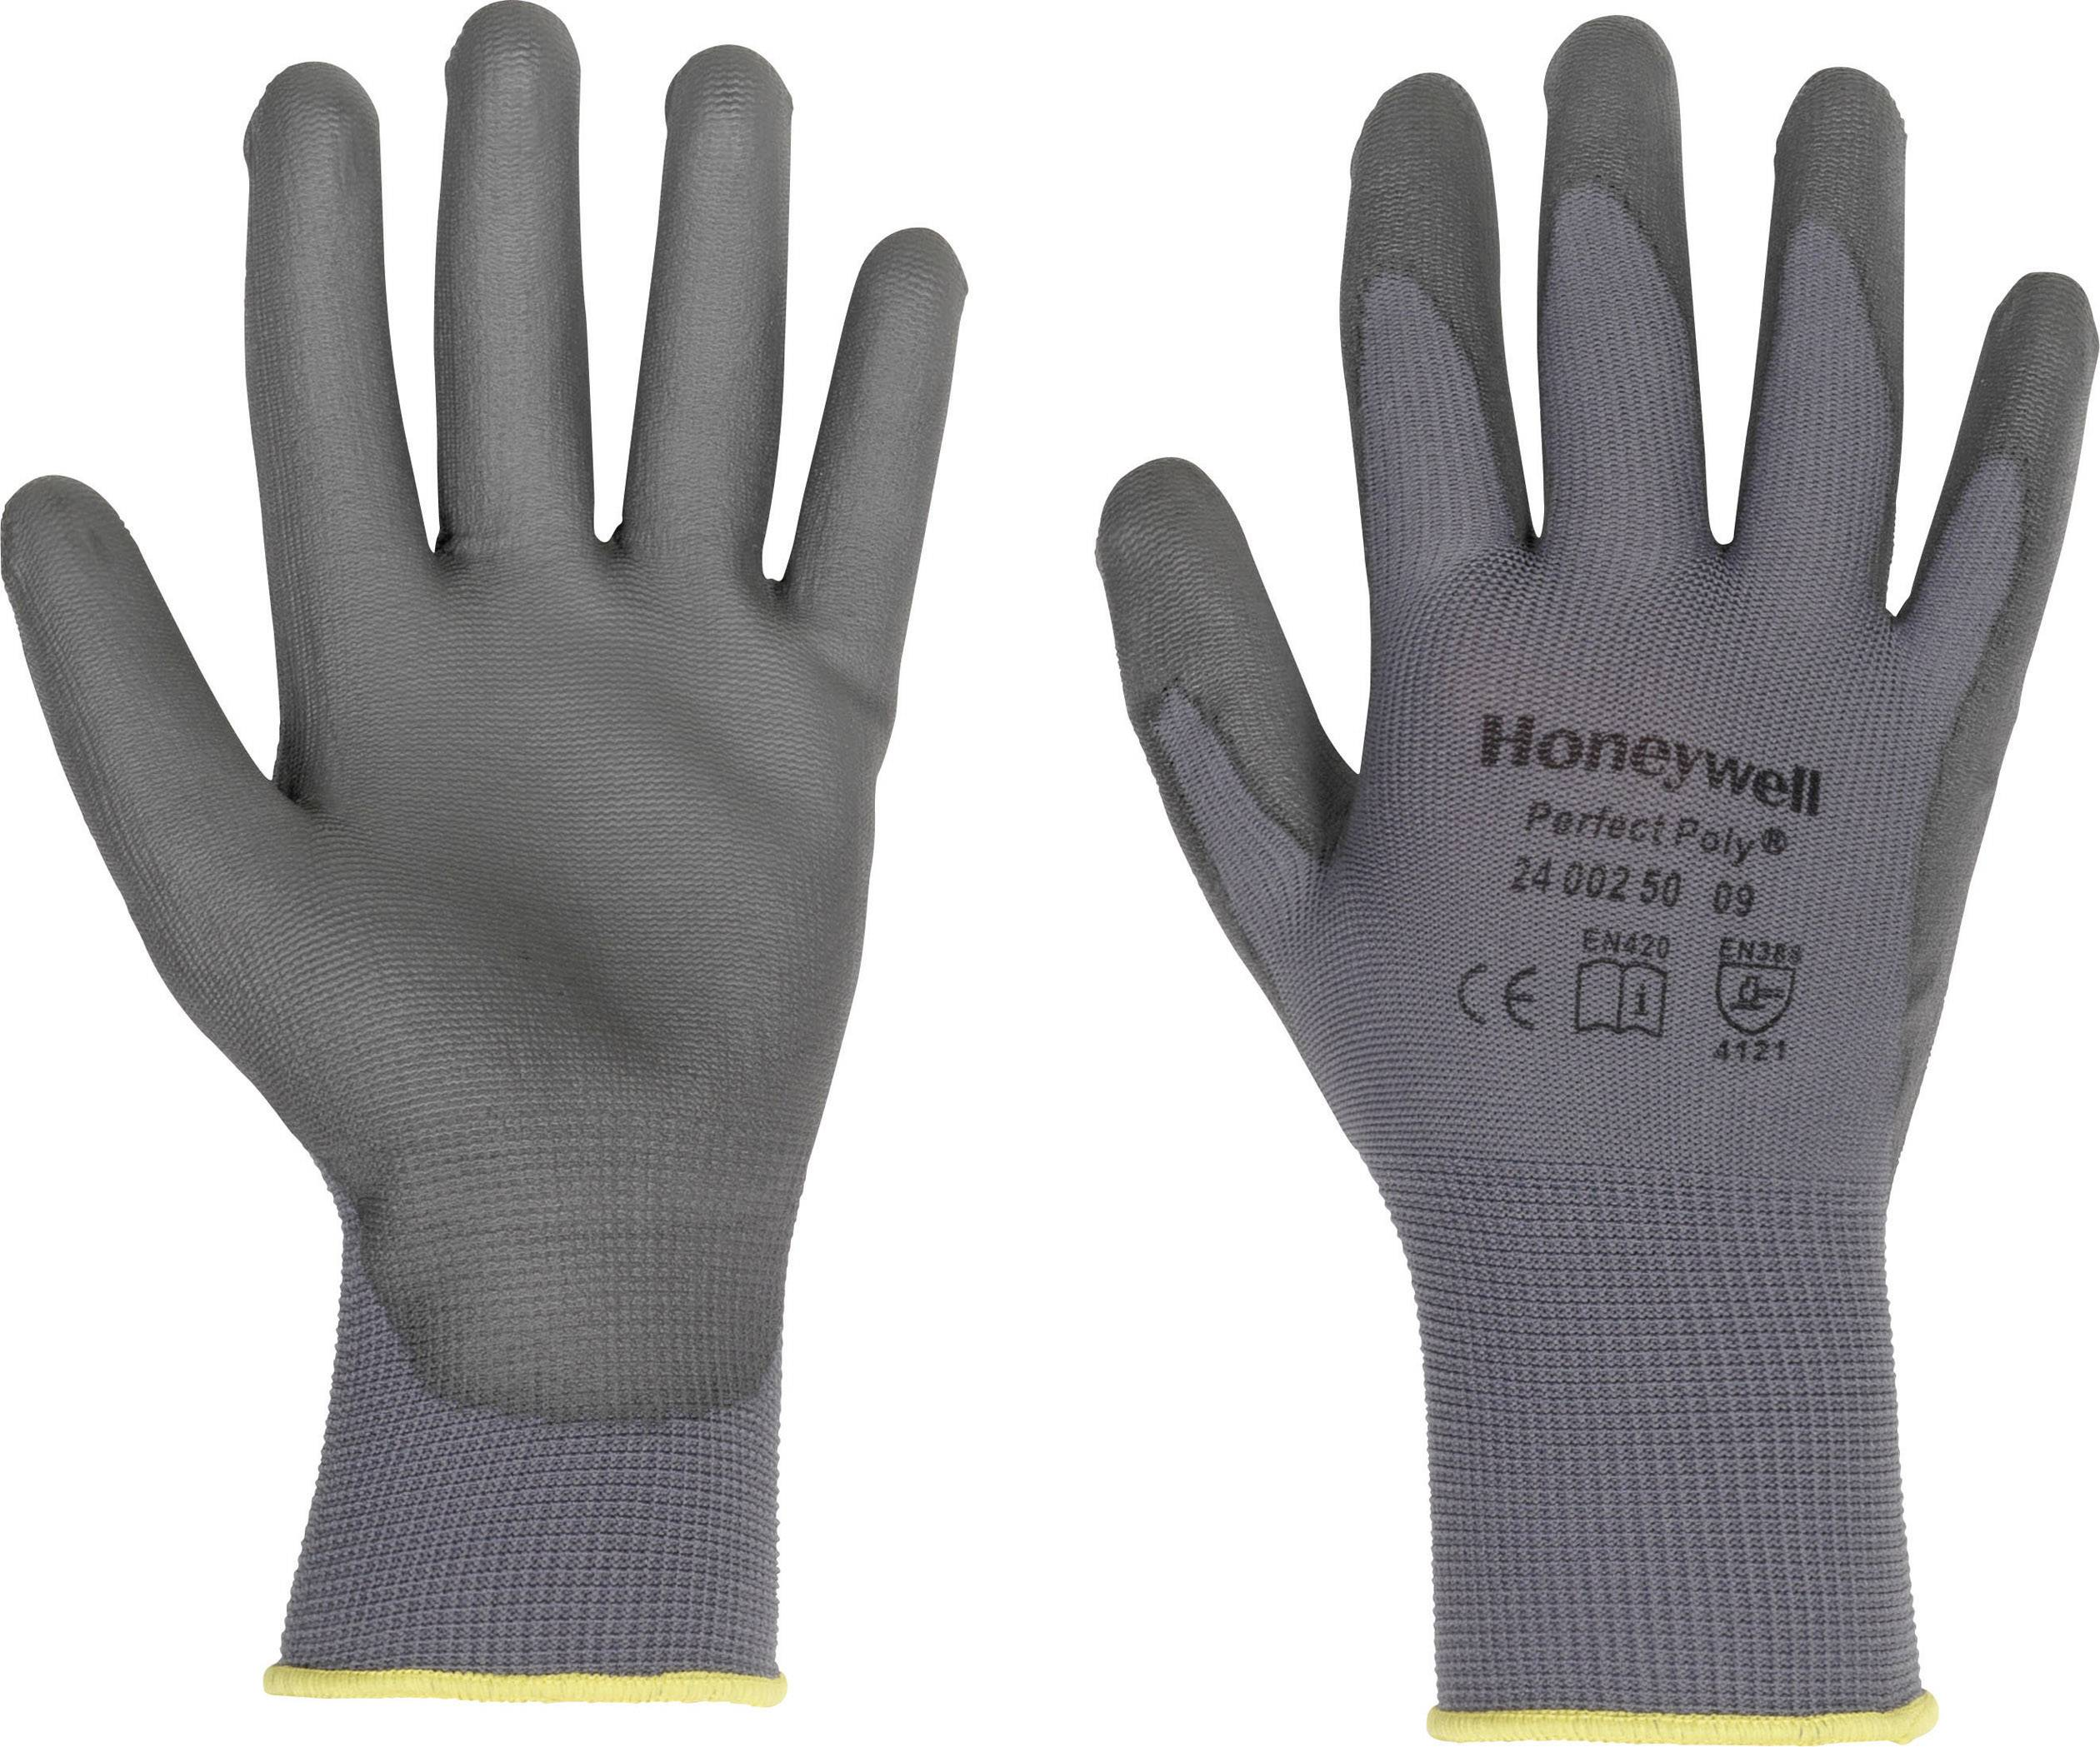 Pracovné rukavice Perfect Fit GANTS GRIS PERFECTPOLY 2400250, velikost rukavic: 6, XS